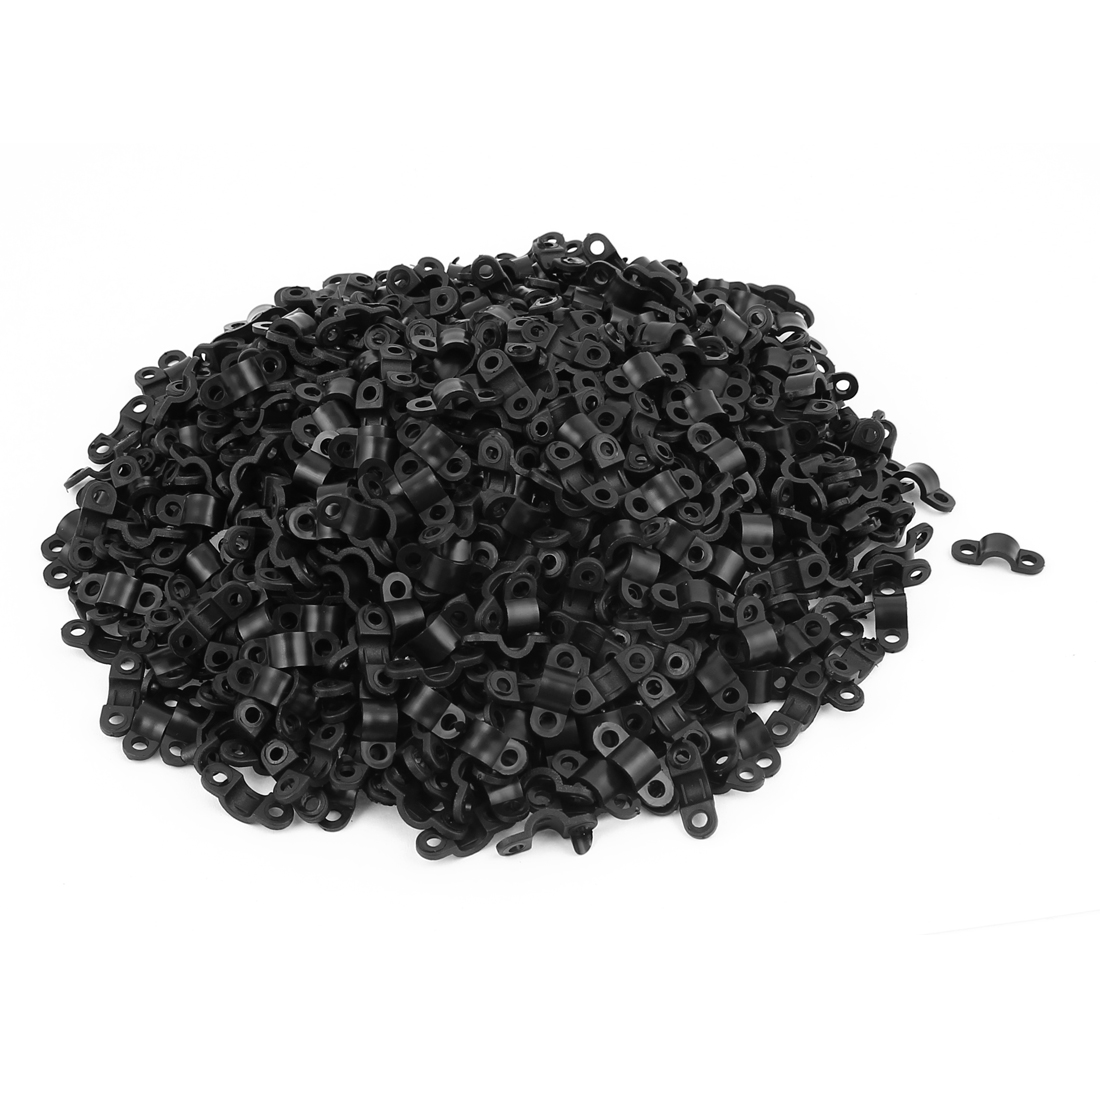 500 Pcs 2mm Dia Arc Shaped Cable Clamp Wire Fastener Fixing Clip Black